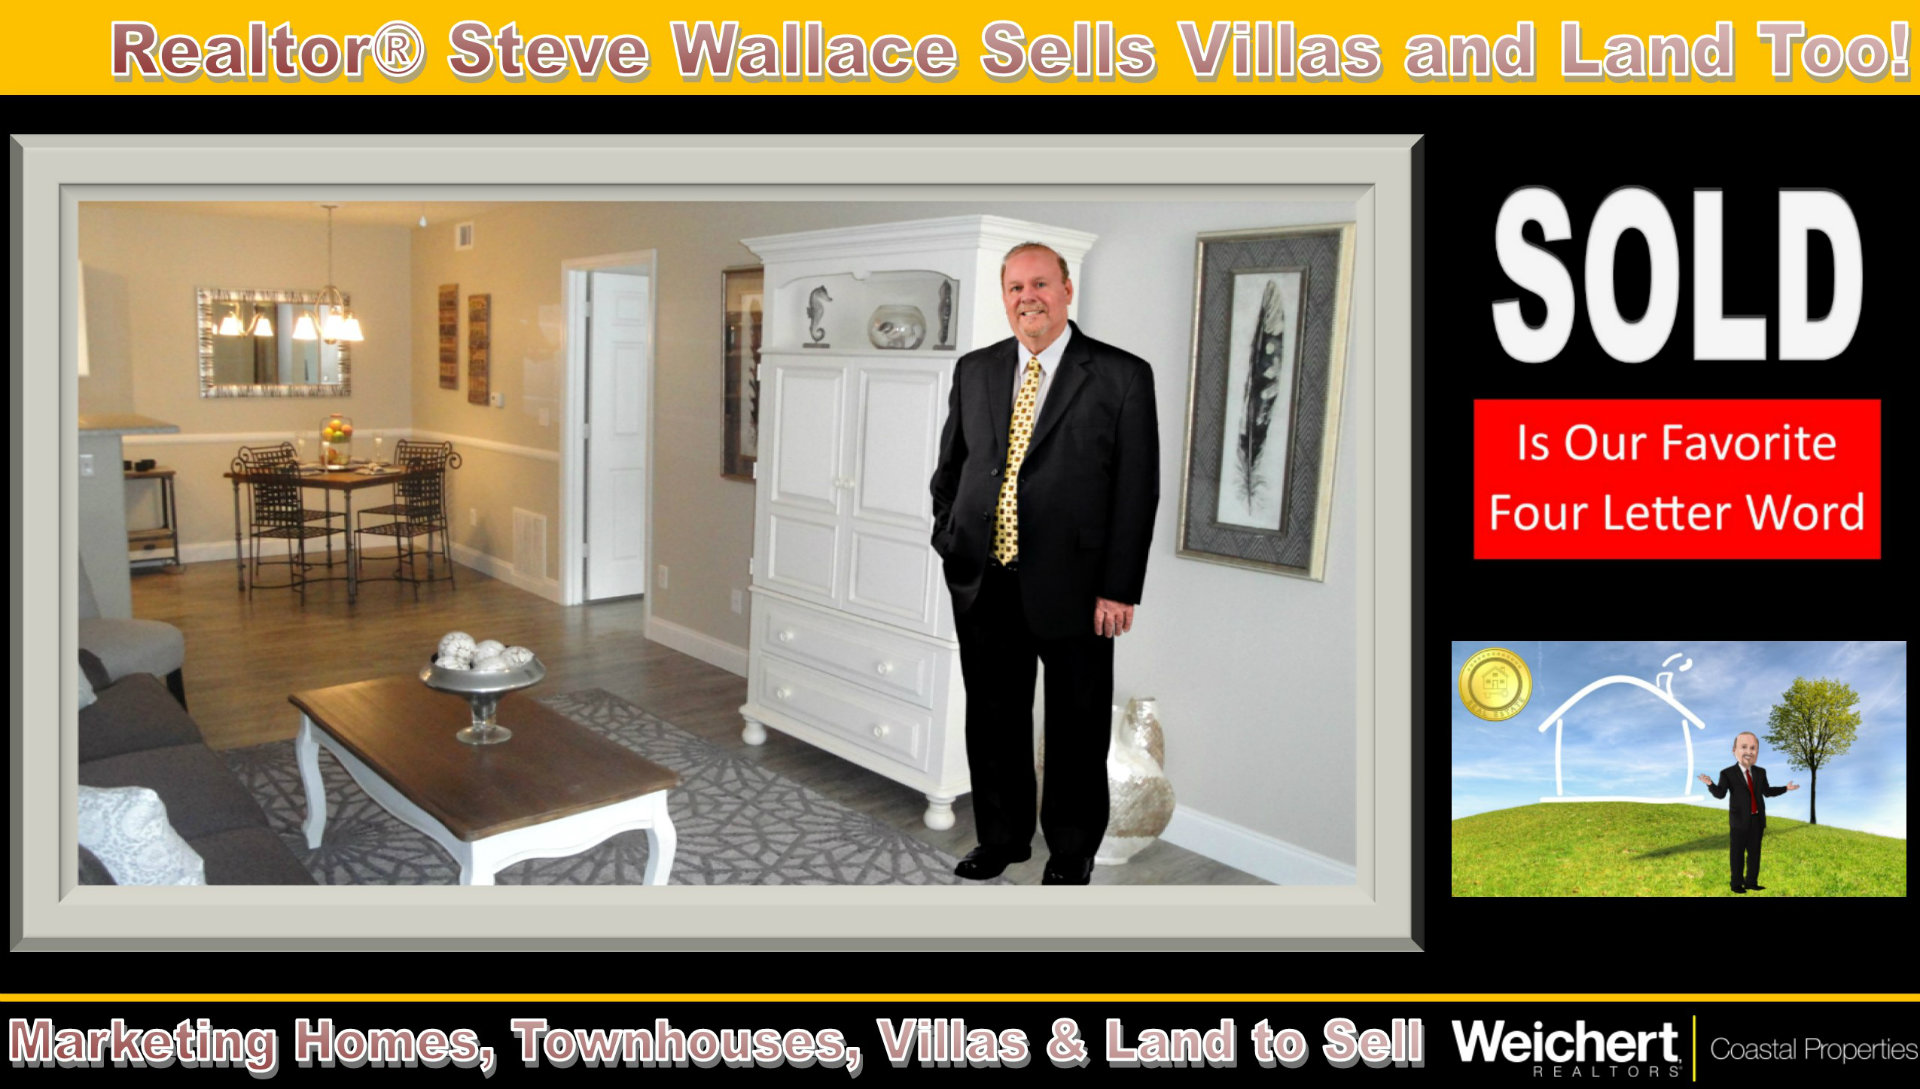 Selling, Bluffton, SC, Homes, Townhouses, Villas, Lots, Land, Real Estate, Properties